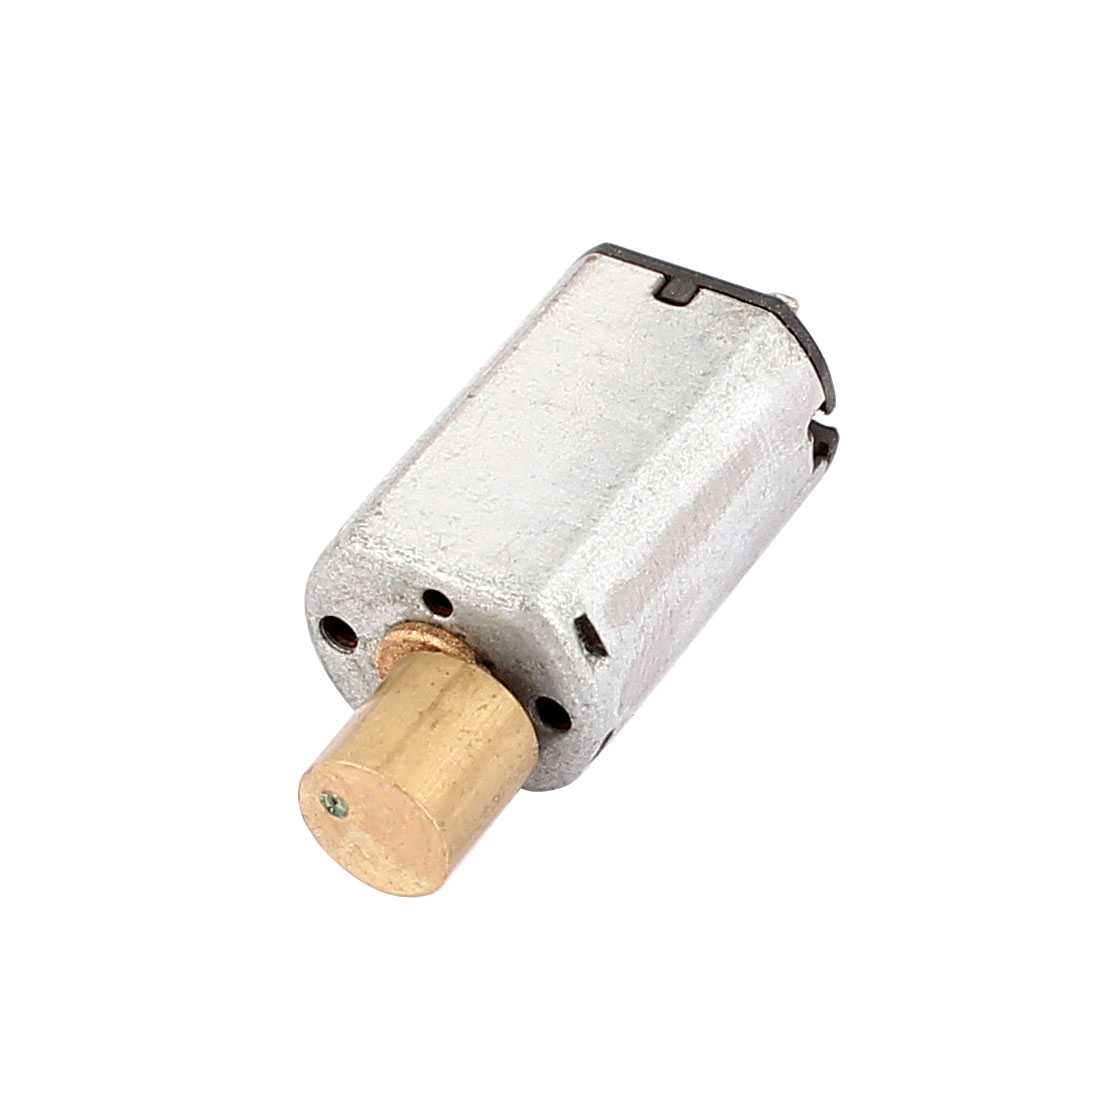 DC 3.7V 1000RPM Output Speed Electronic Toy Mini Vibrating Vibration Motor